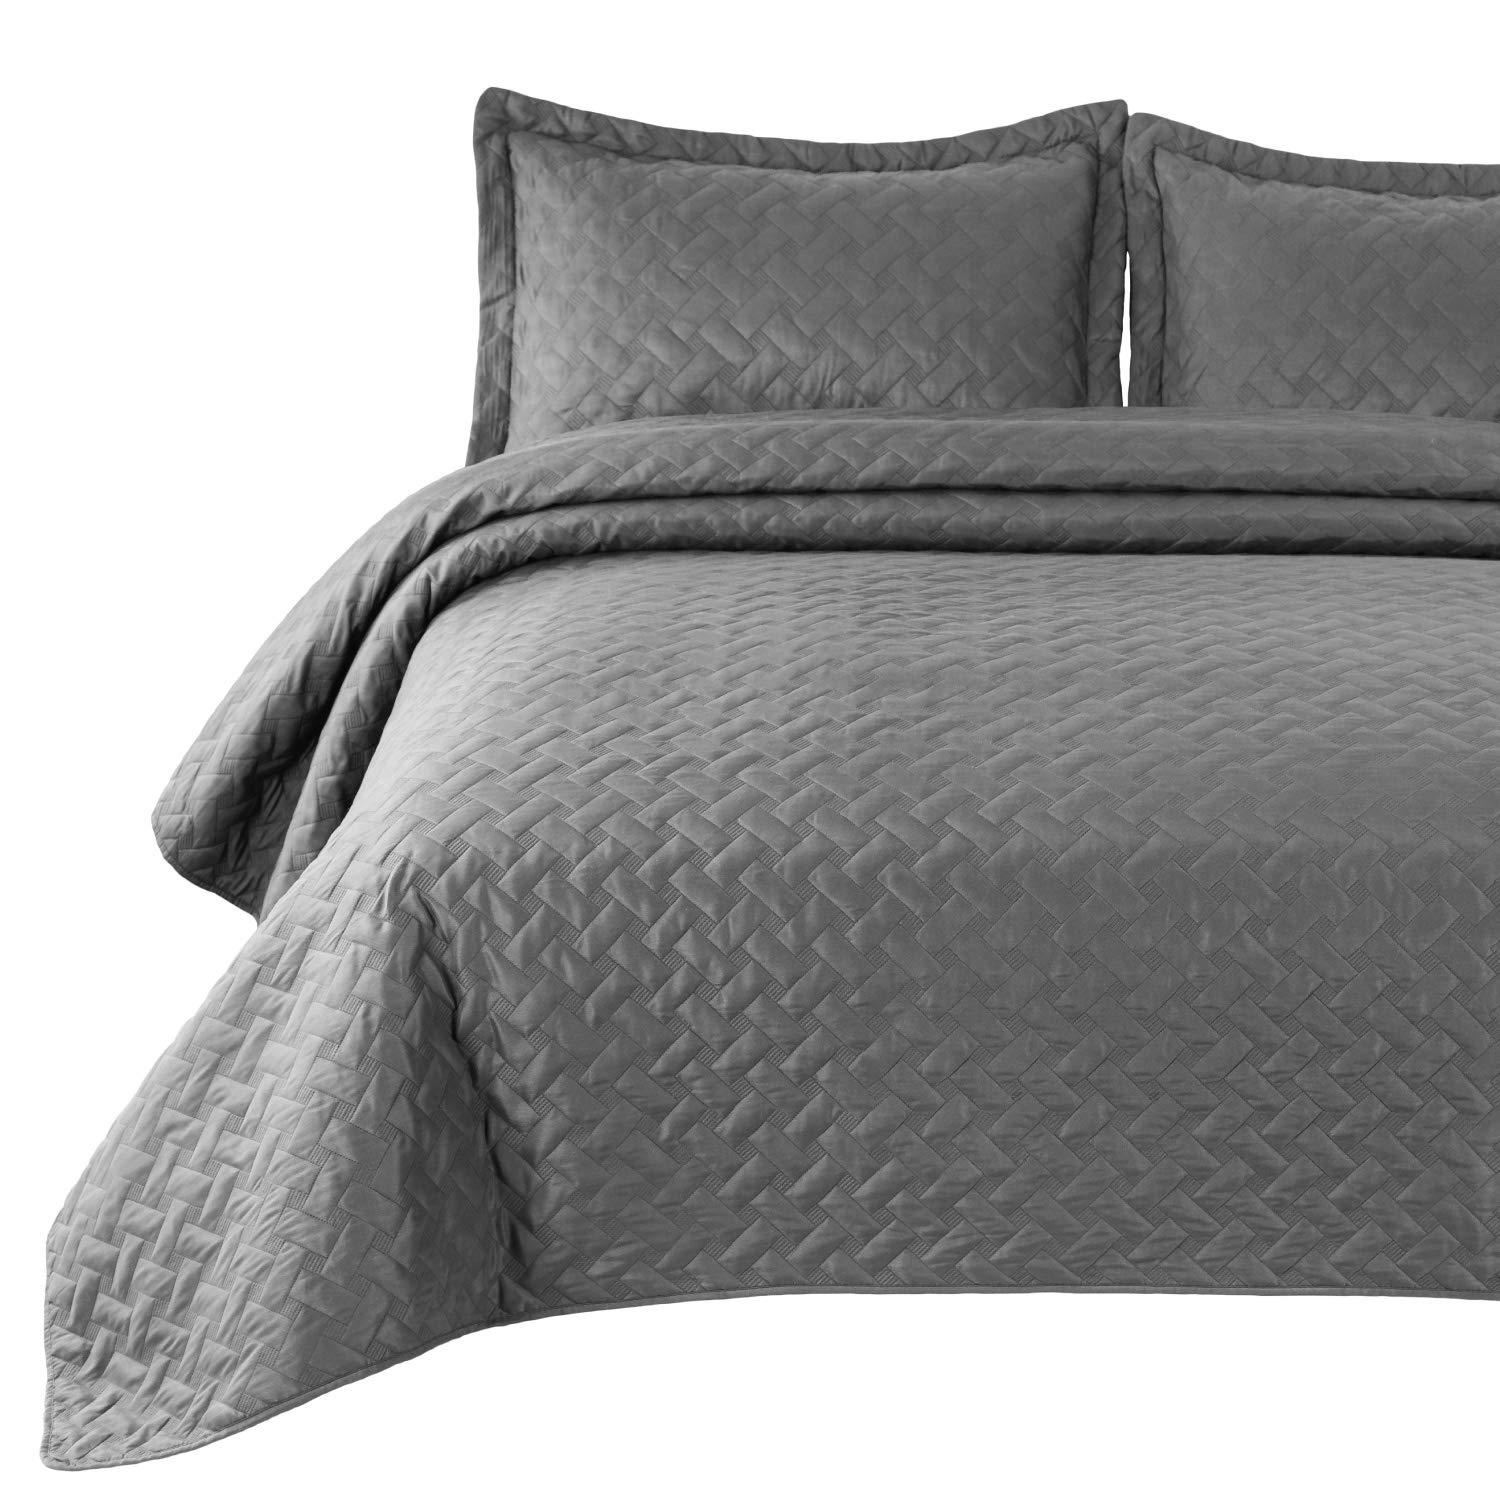 Bedsure Quilt Set Grey Twin Size (68x86 inches) - Basket Weave Pattern Bedspread - Soft Microfiber Lightweight Coverlet for All Season - 2 Pieces (Includes 1 Quilt, 1 sham)